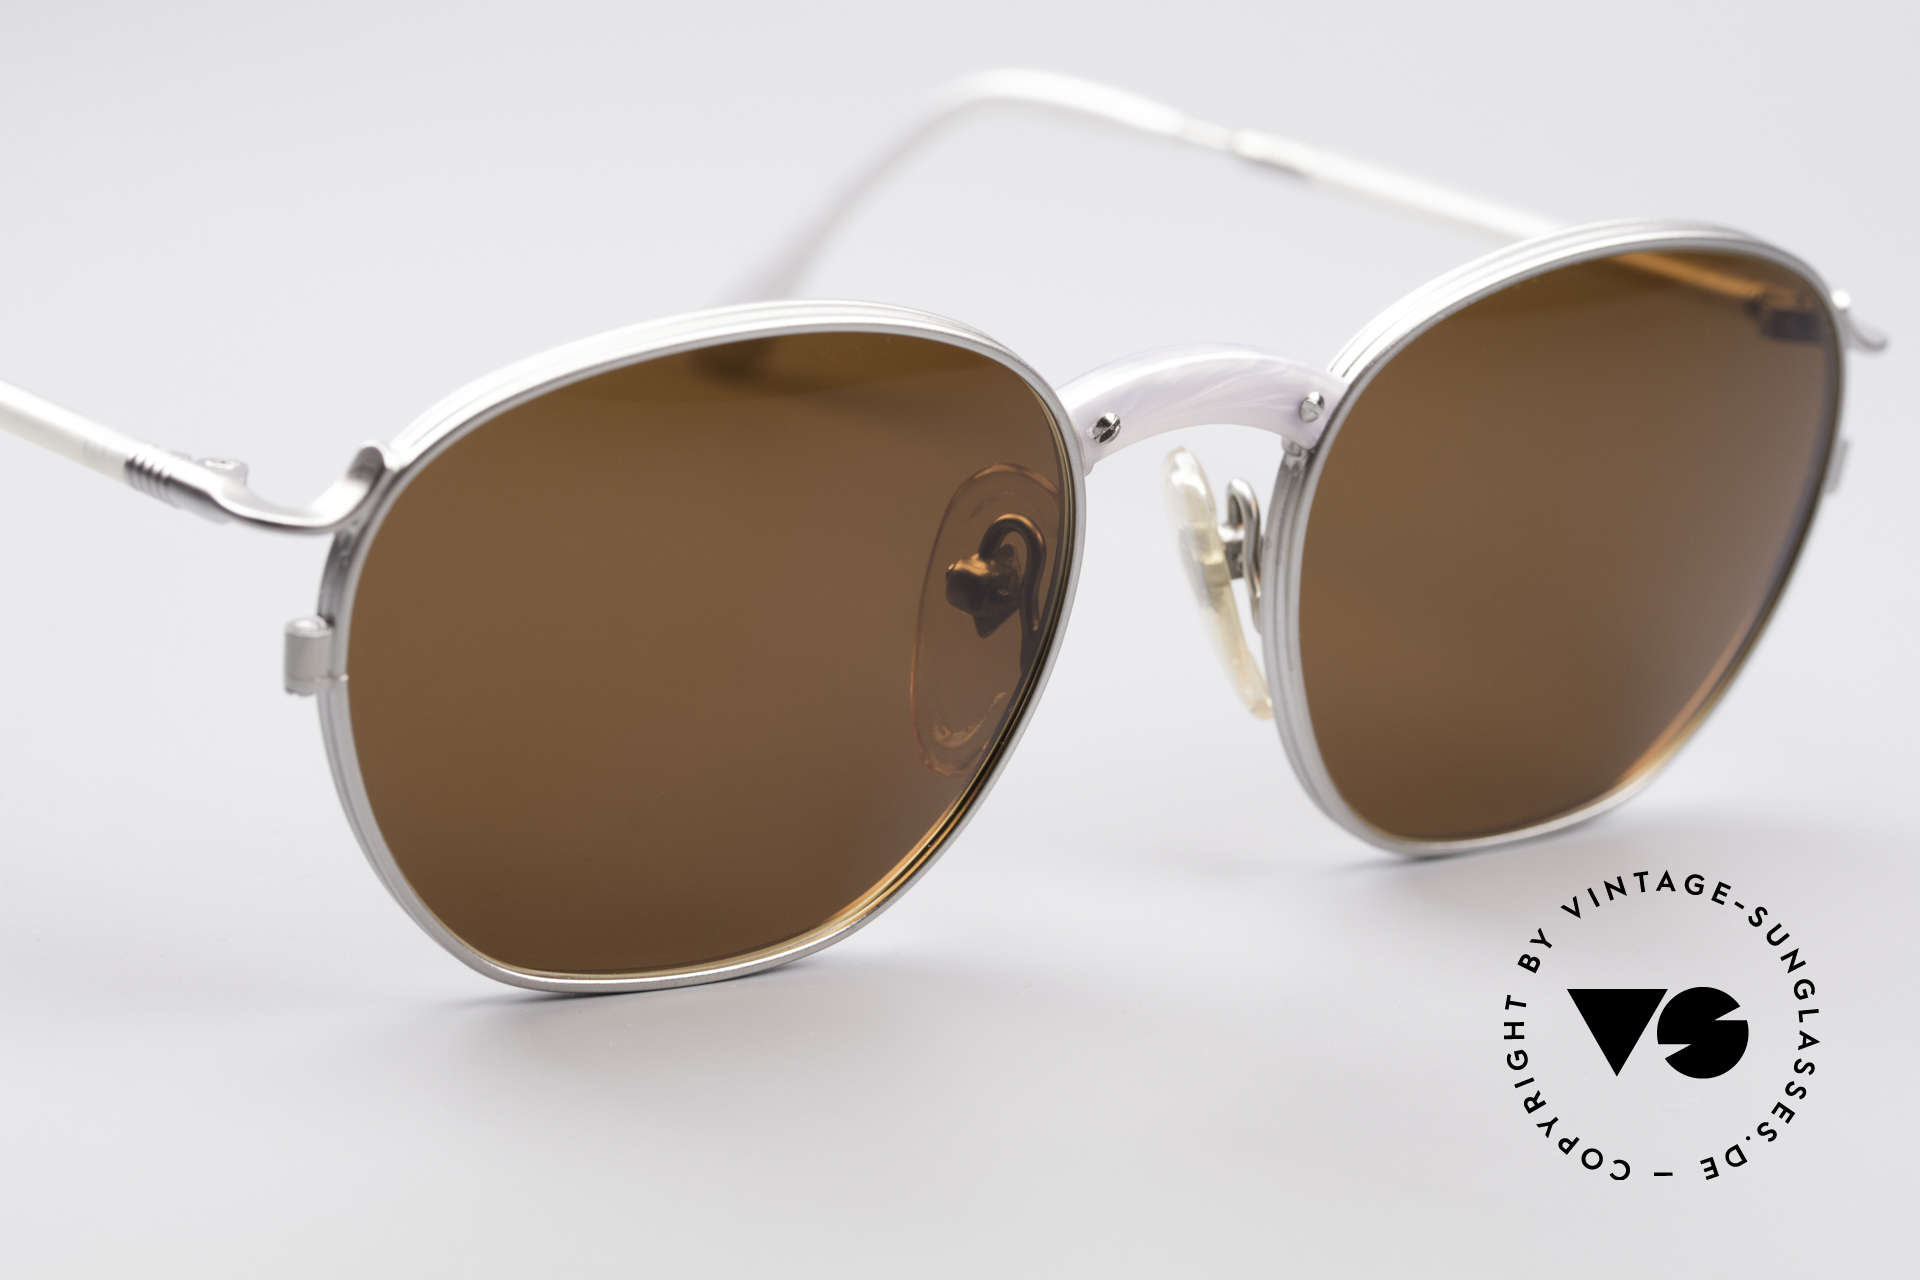 Jean Paul Gaultier 55-1271 JPG Vintage Sunglasses, unused (like all our Haute Couture J.P.G. sunglasses), Made for Men and Women